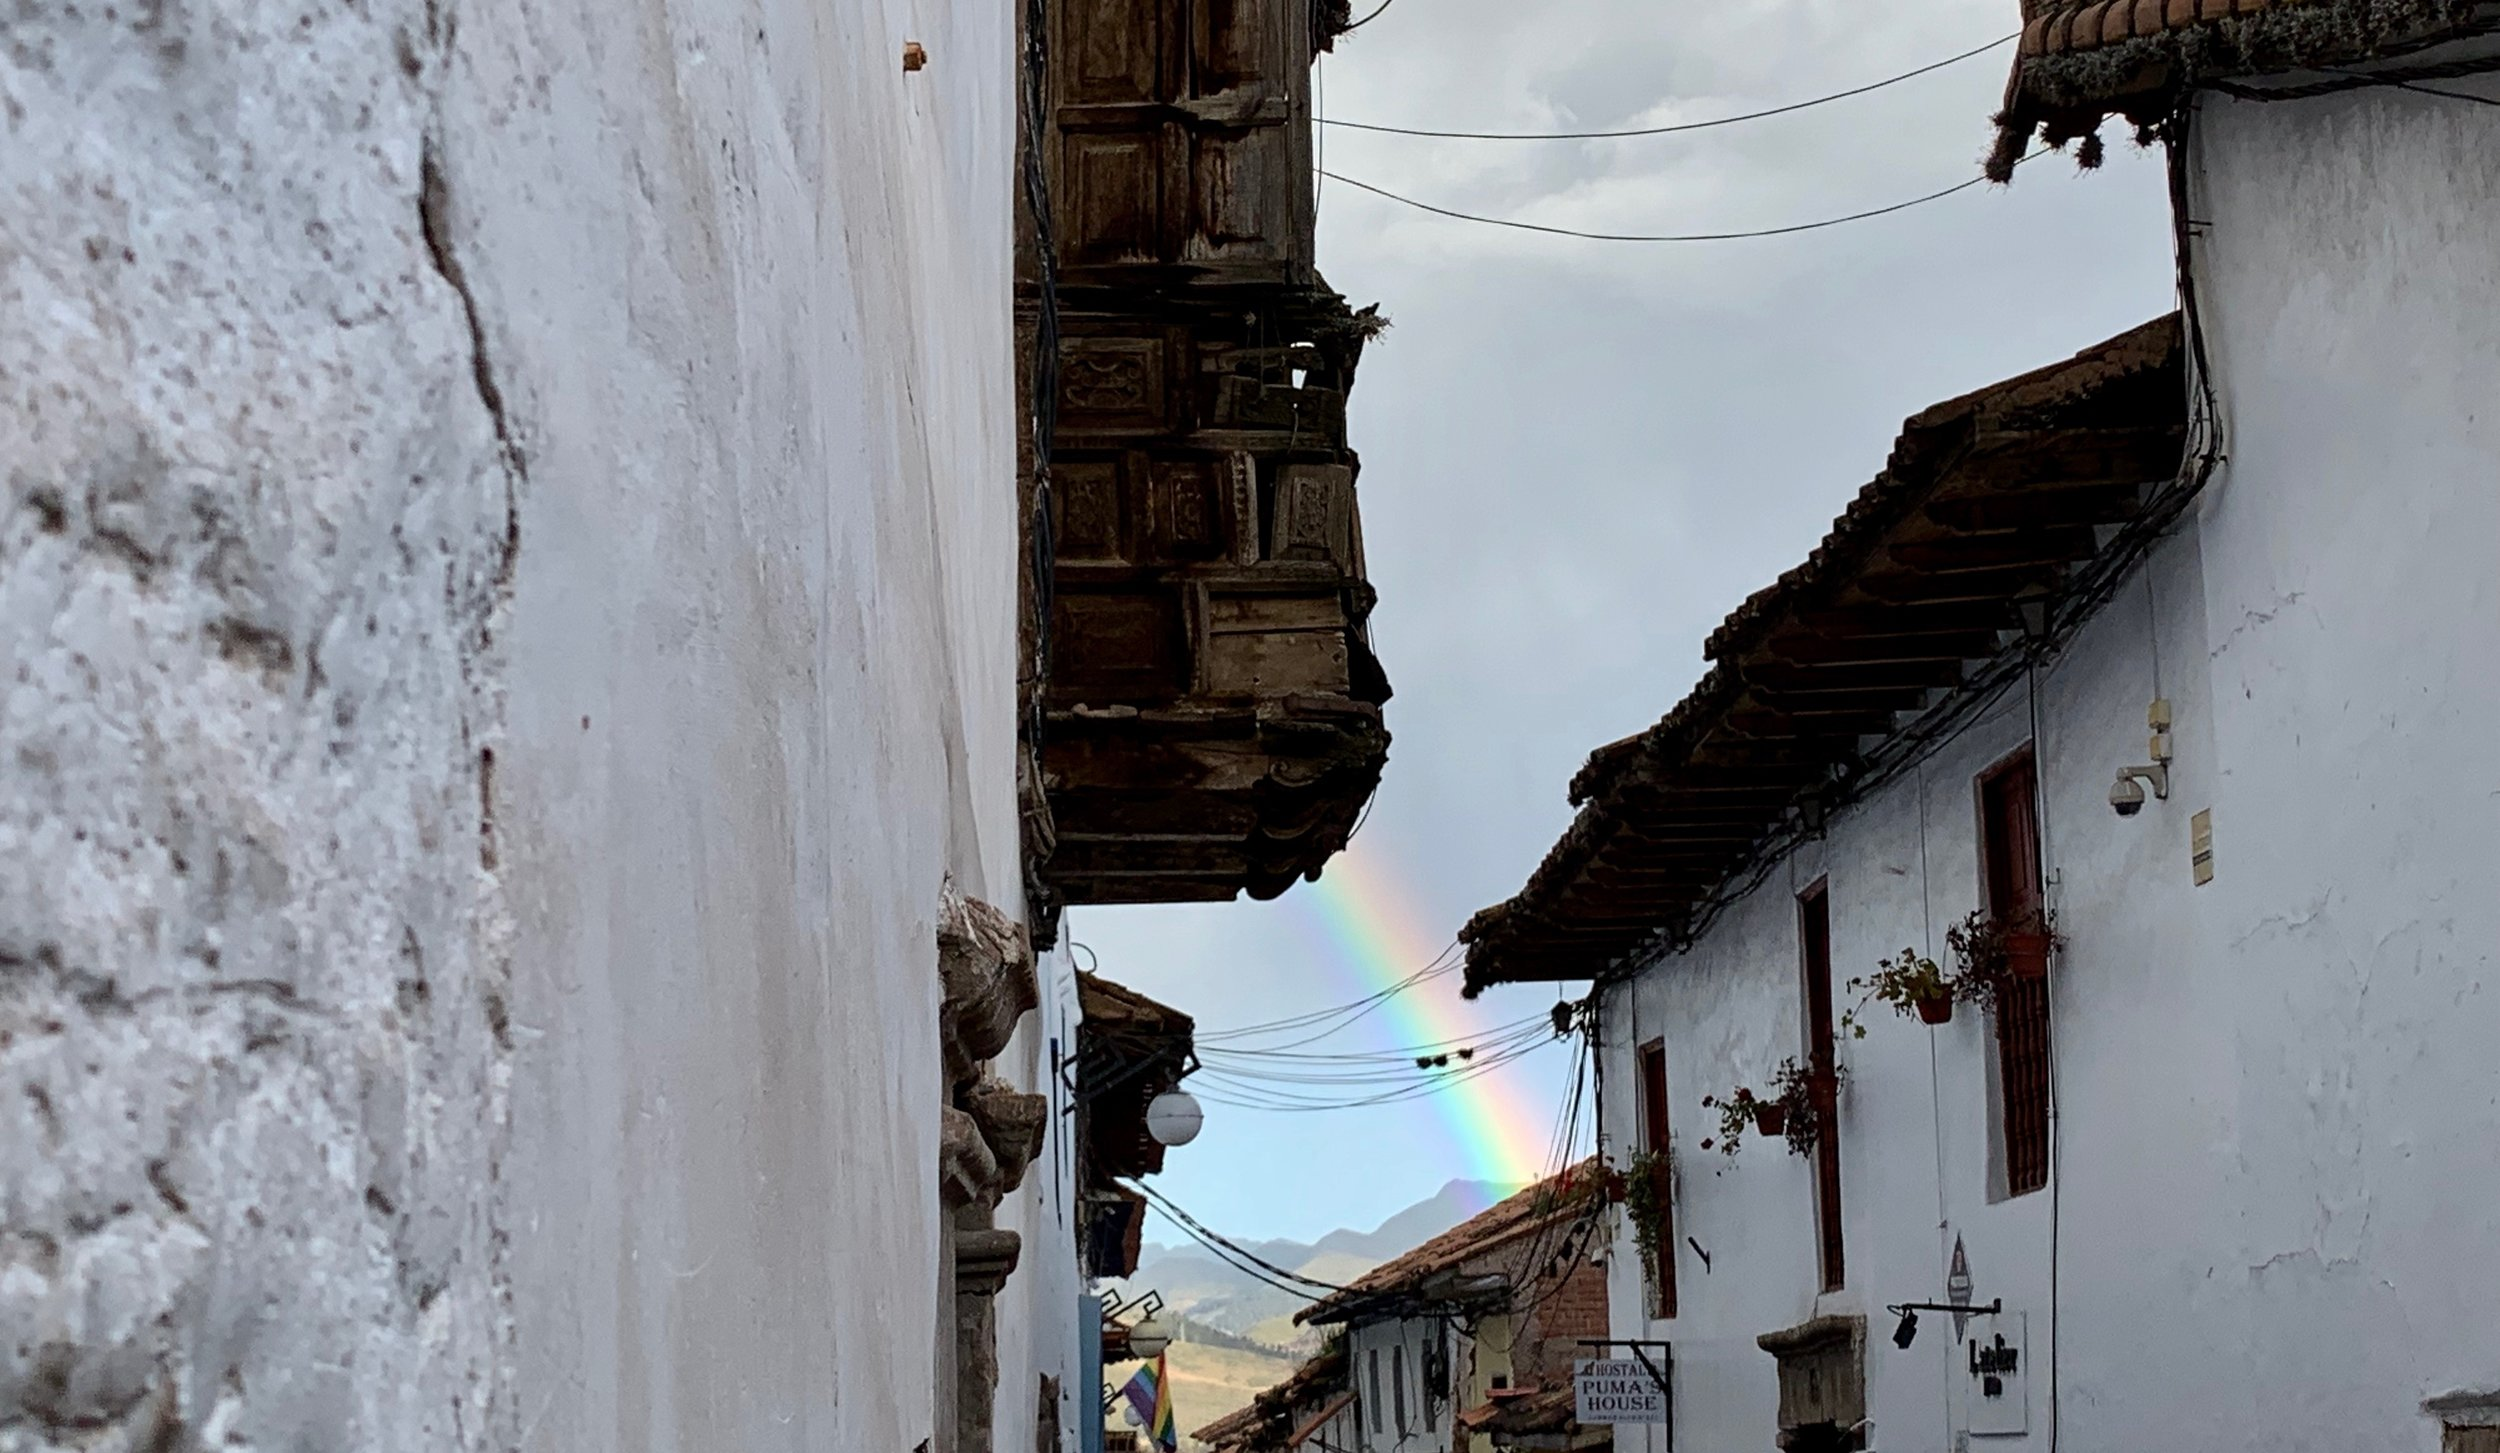 The Inca Worshipped The Rainbow